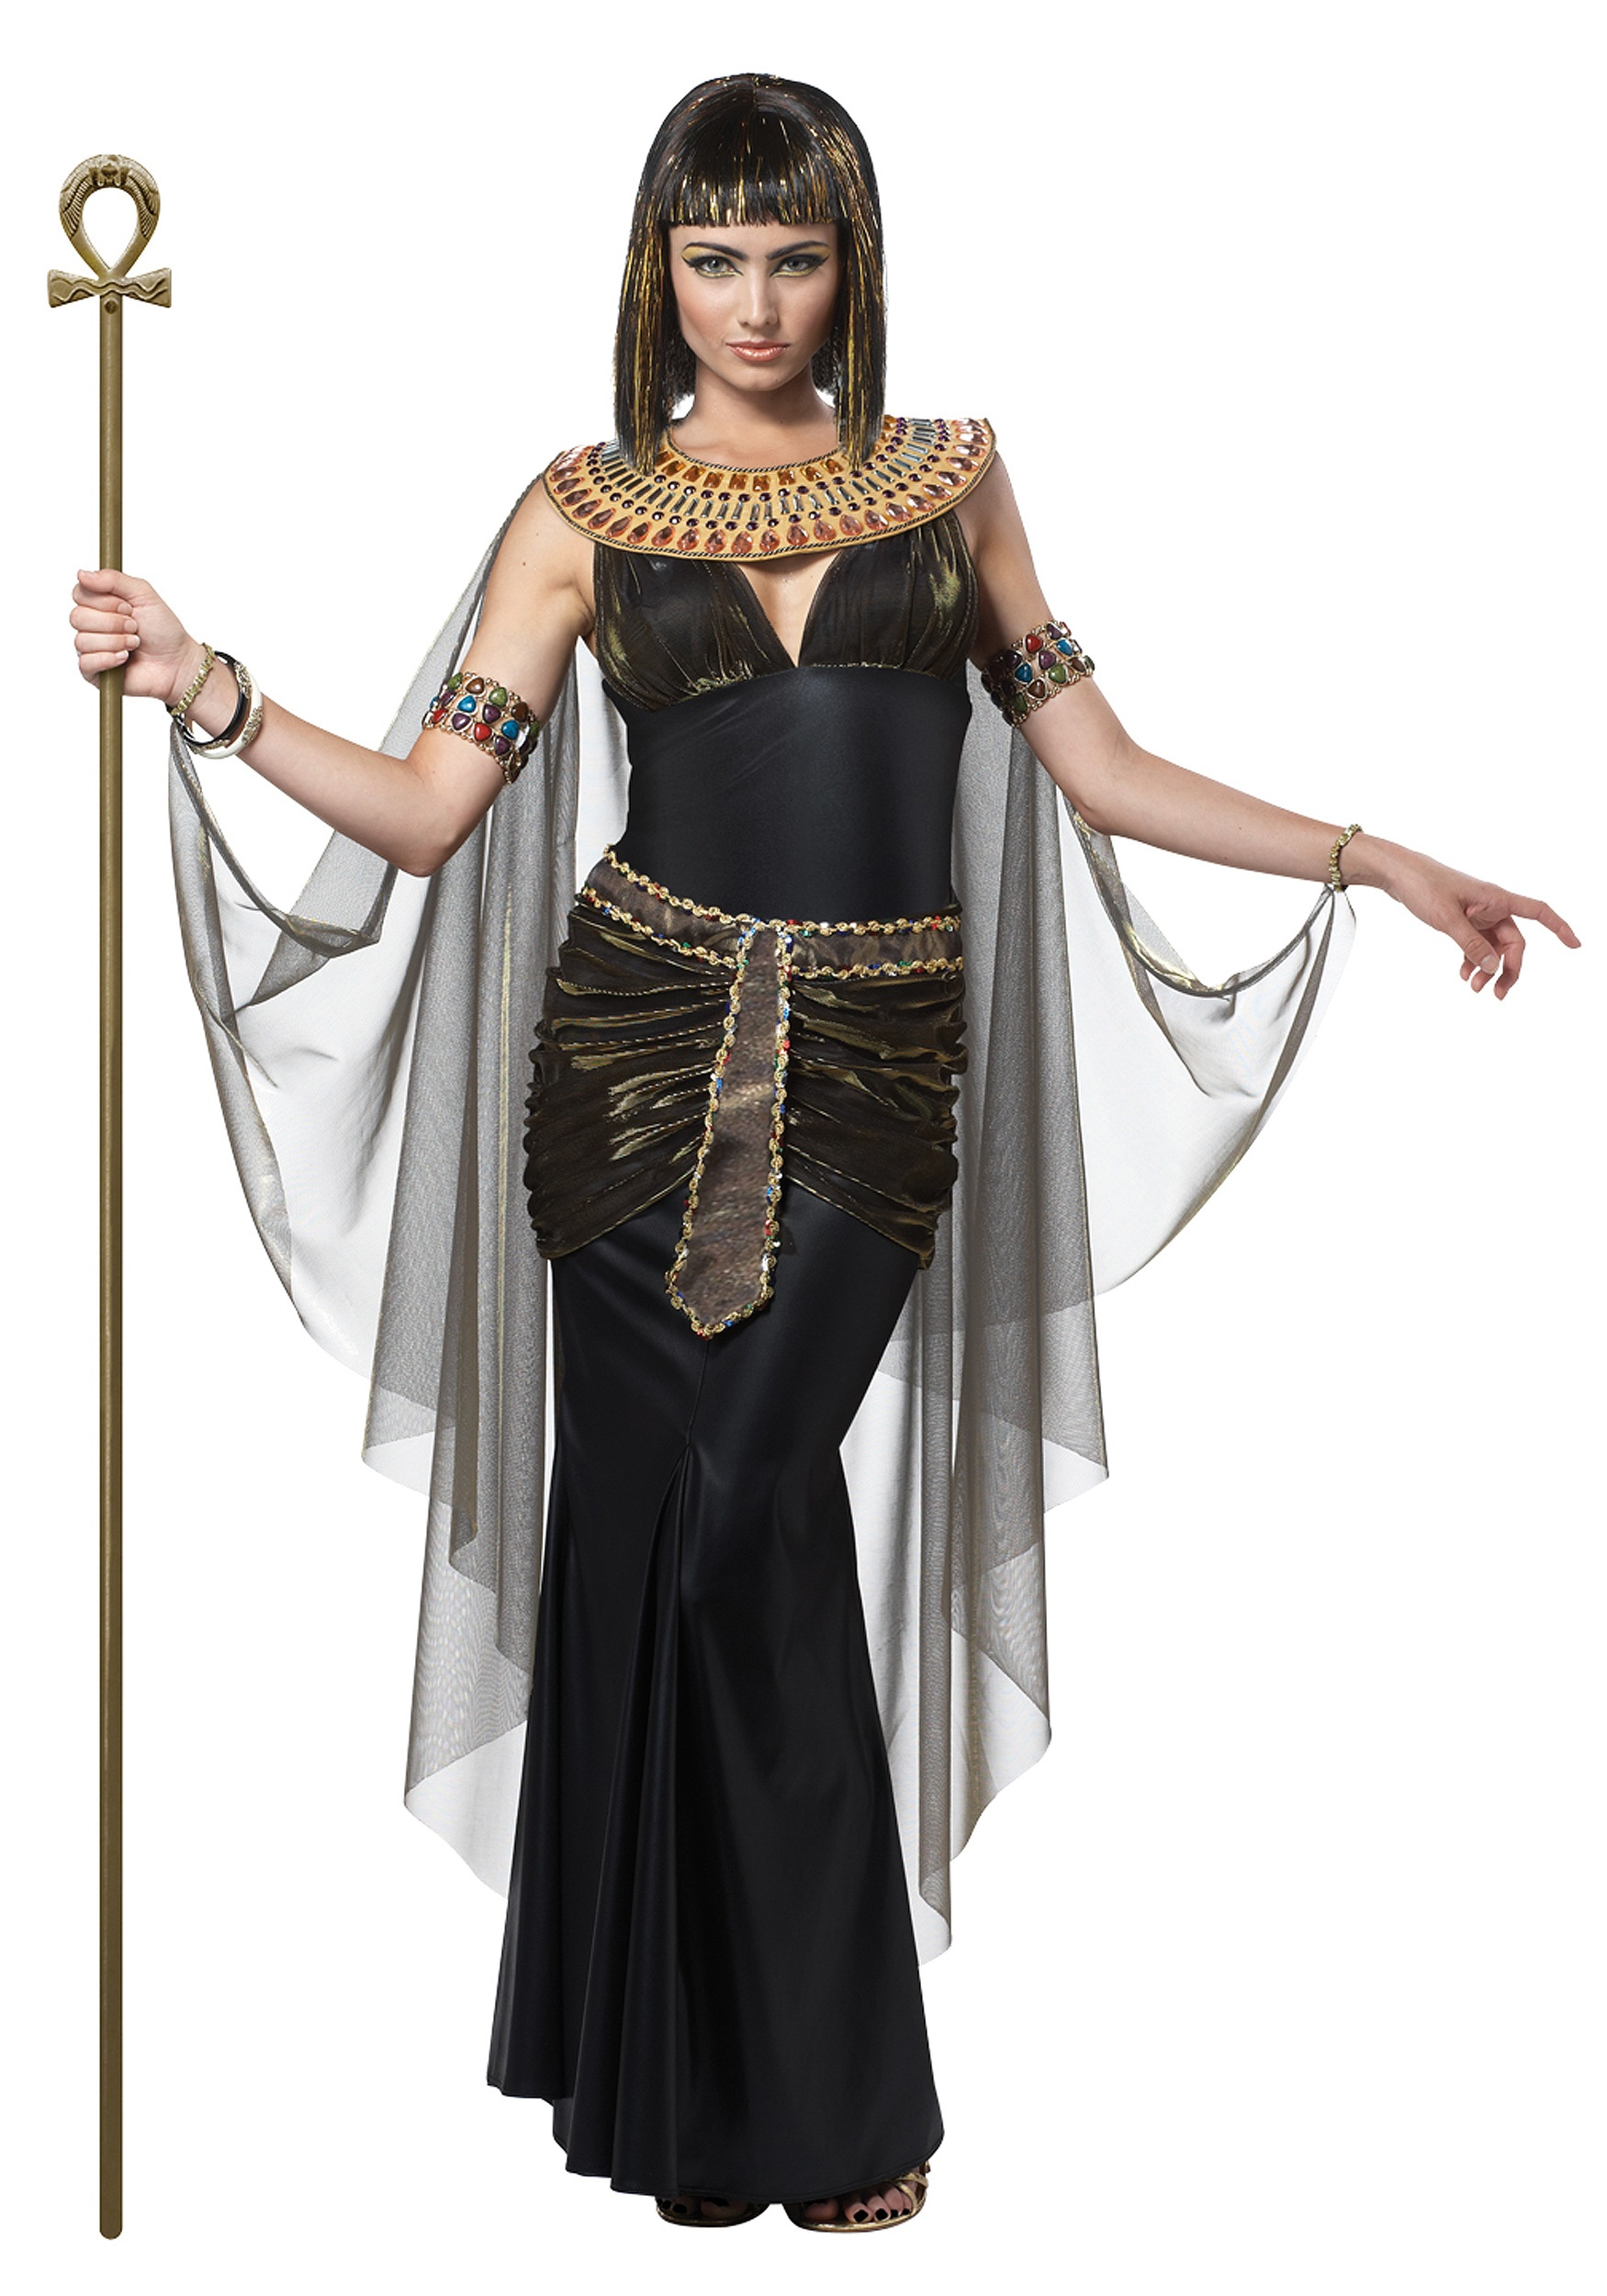 sc 1 st  Halloween Costumes : egyptian costumes accessories  - Germanpascual.Com